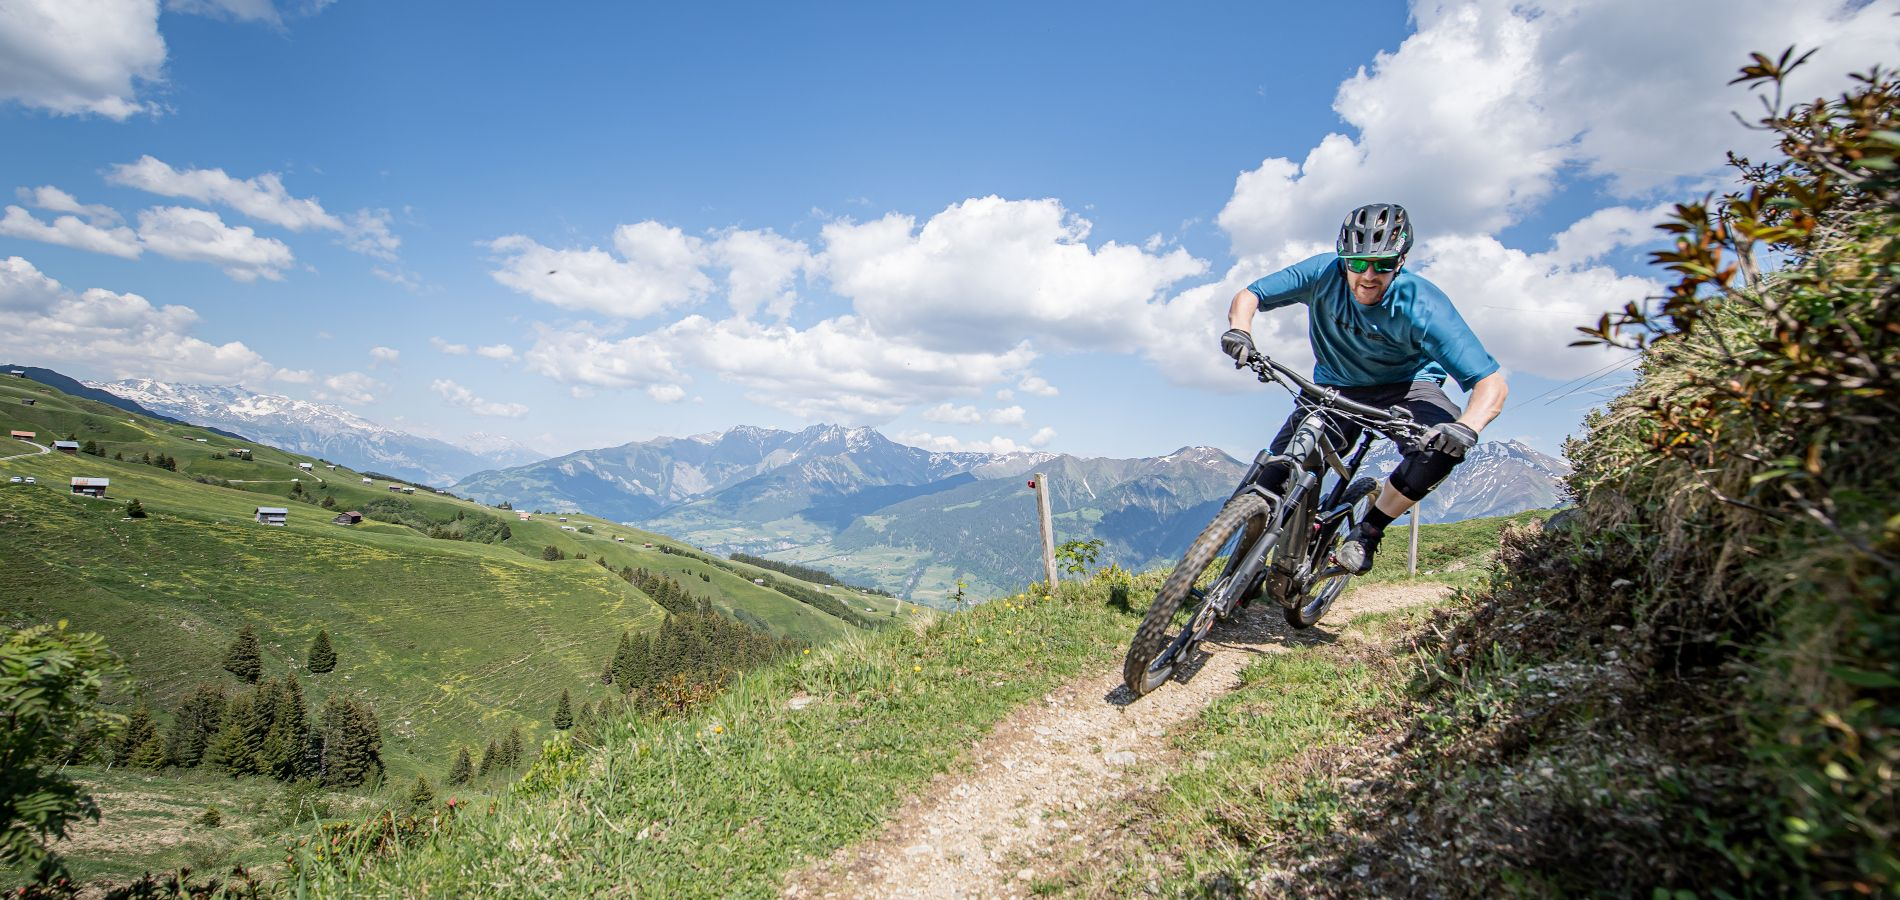 Rad & Mountainbike & E-Mountainbike